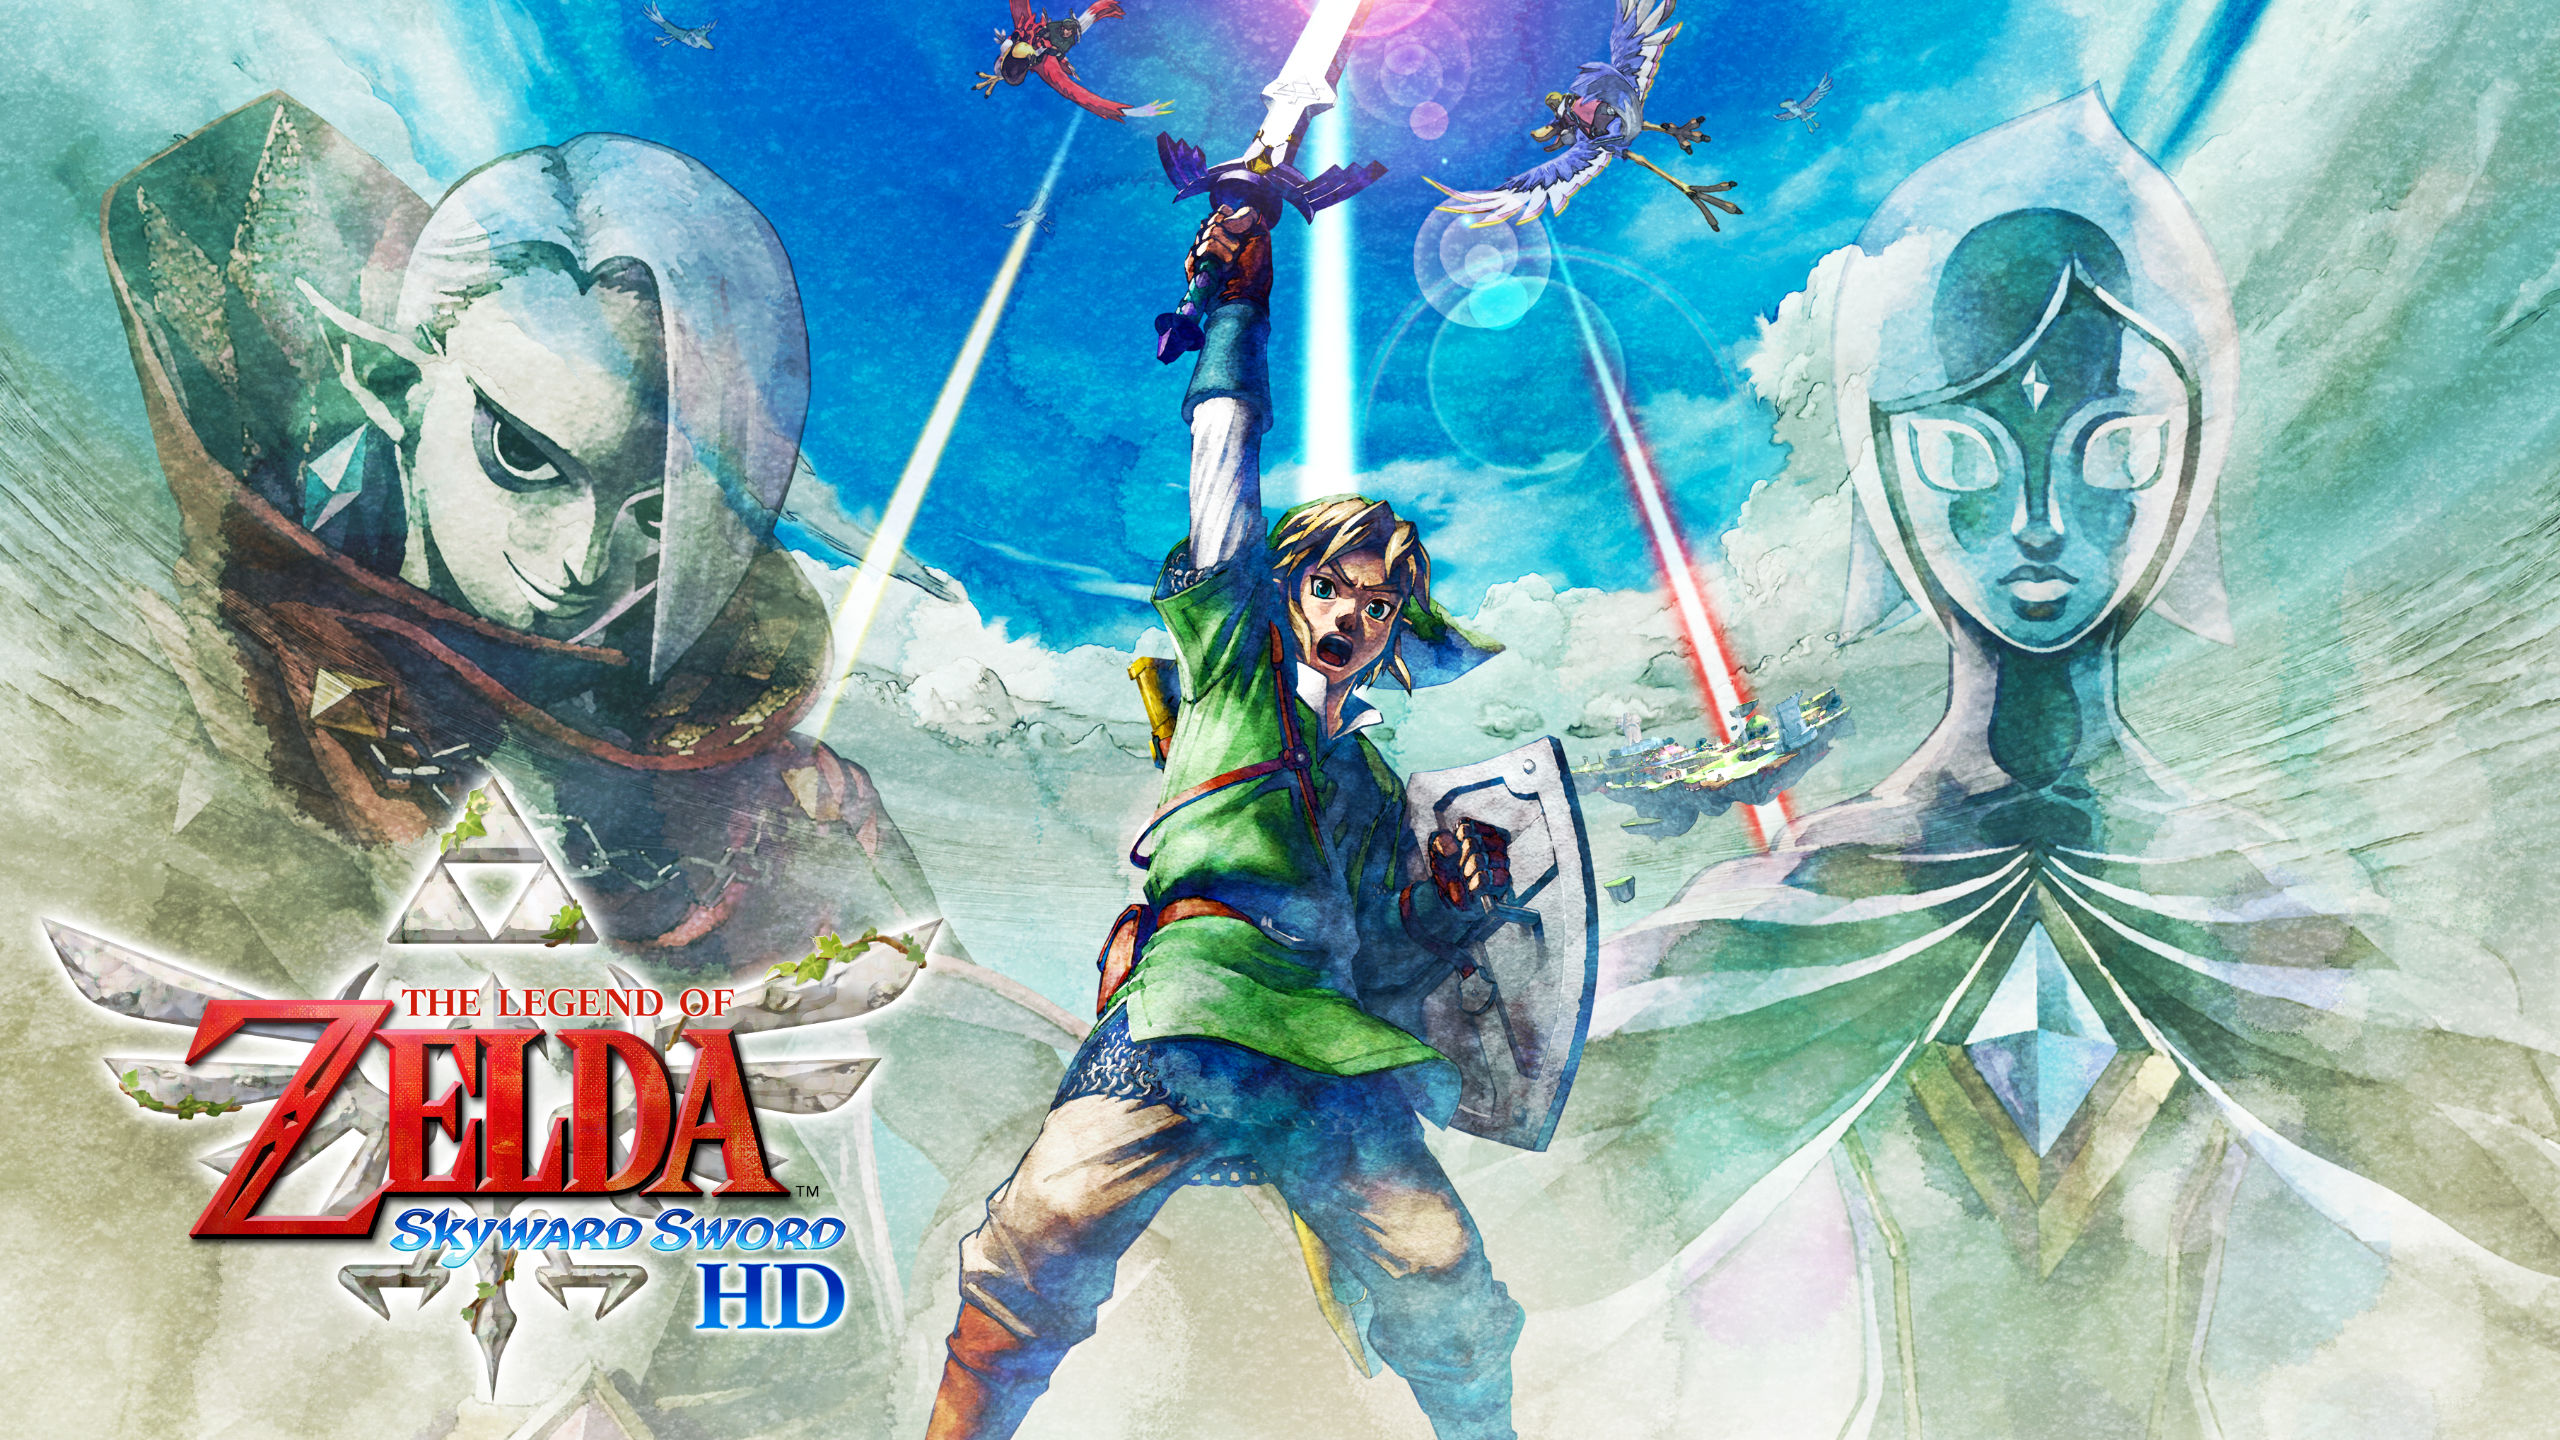 The Legend of Zelda: Skyward Sword HD Artwork with Link heroically raising his sword in the air against a bright cloudy sky.